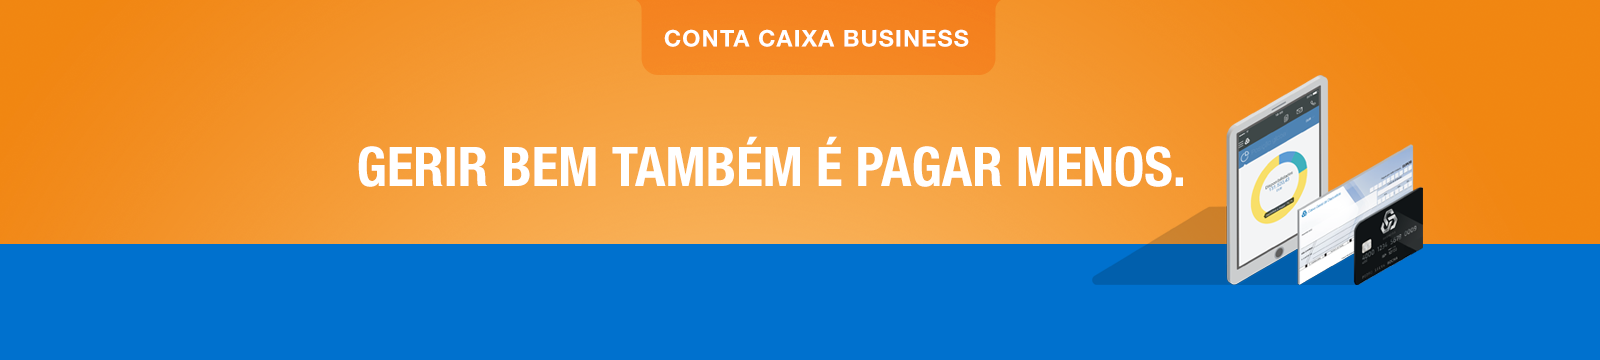 Conta Caixa Business